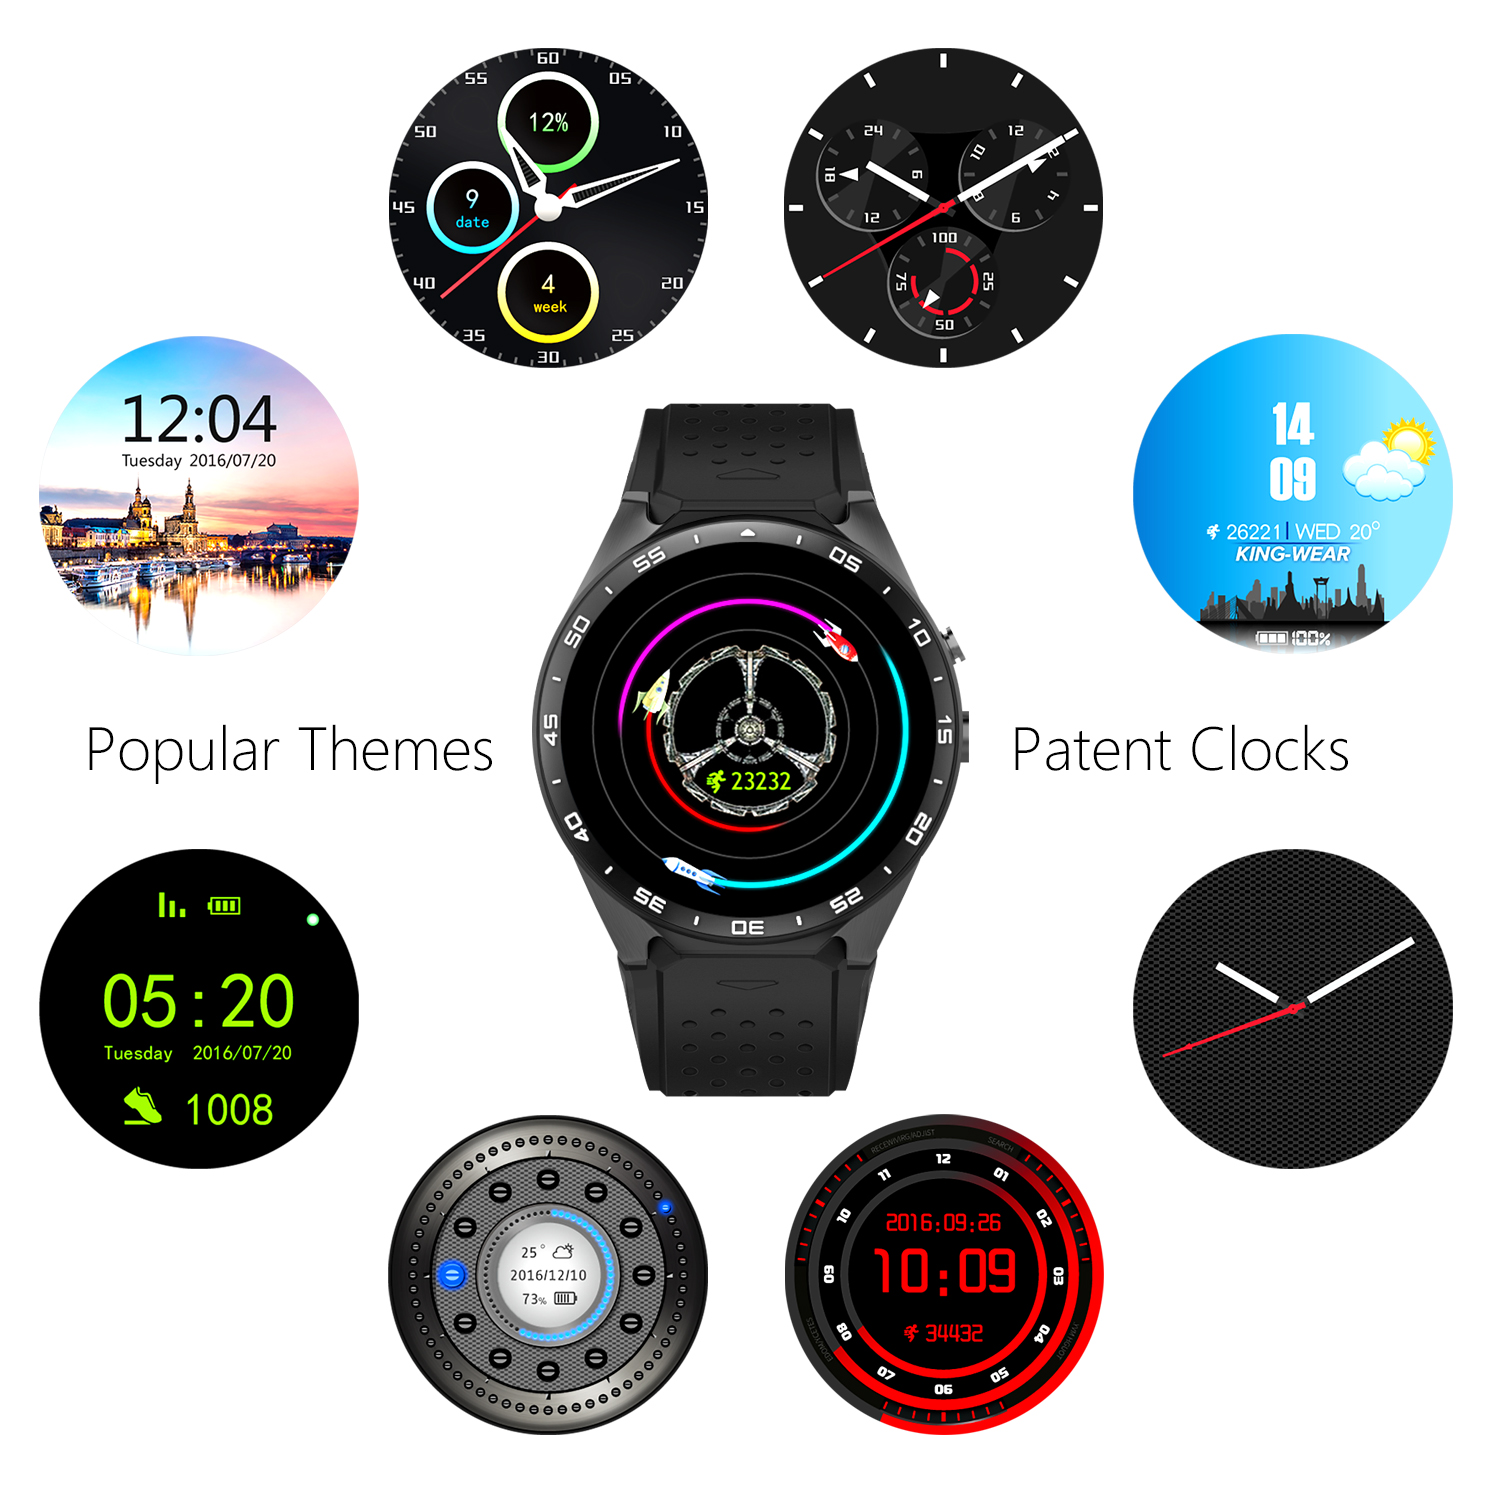 otex Best Kw88 android 5.1 OS Smart watch 1.39 inch scrren mtk6580 SmartWatch phone support bluetooth 3G wifi nano SIM WCDMA potino gw11 3g watch bluetooth 1 3 inch ultra thin screen smart watch phone support nano sim card wifi gps map pedometer